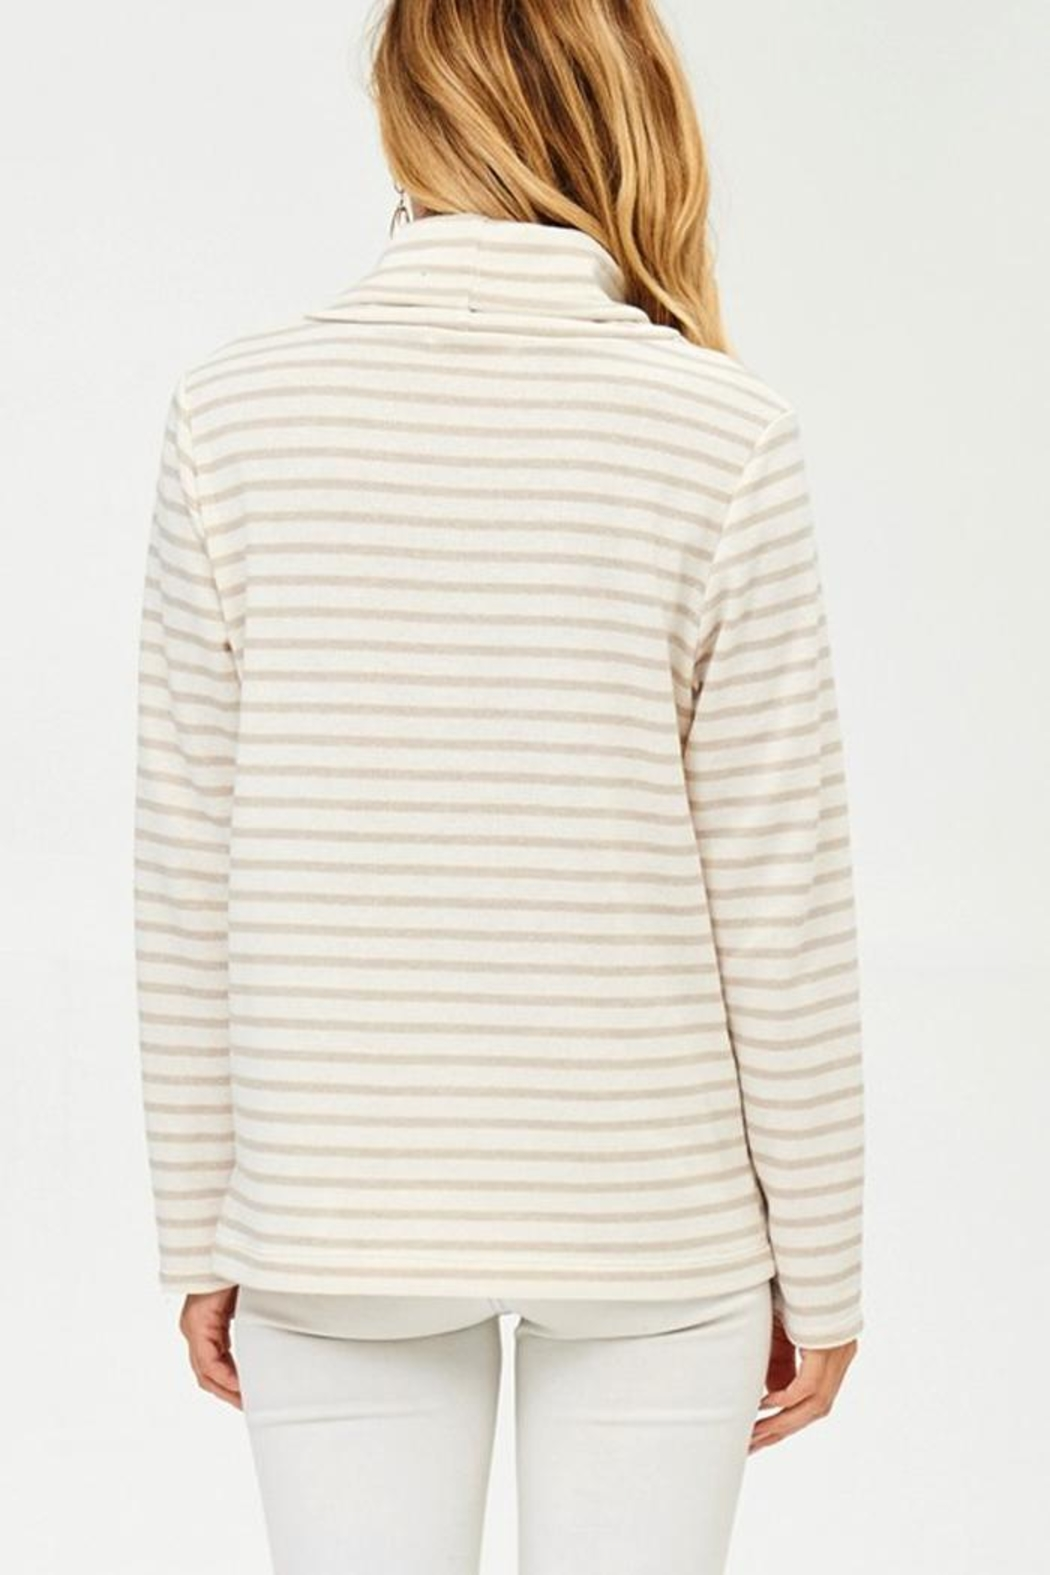 Hailey & Co Winter White Sweatshirt - Back Cropped Image